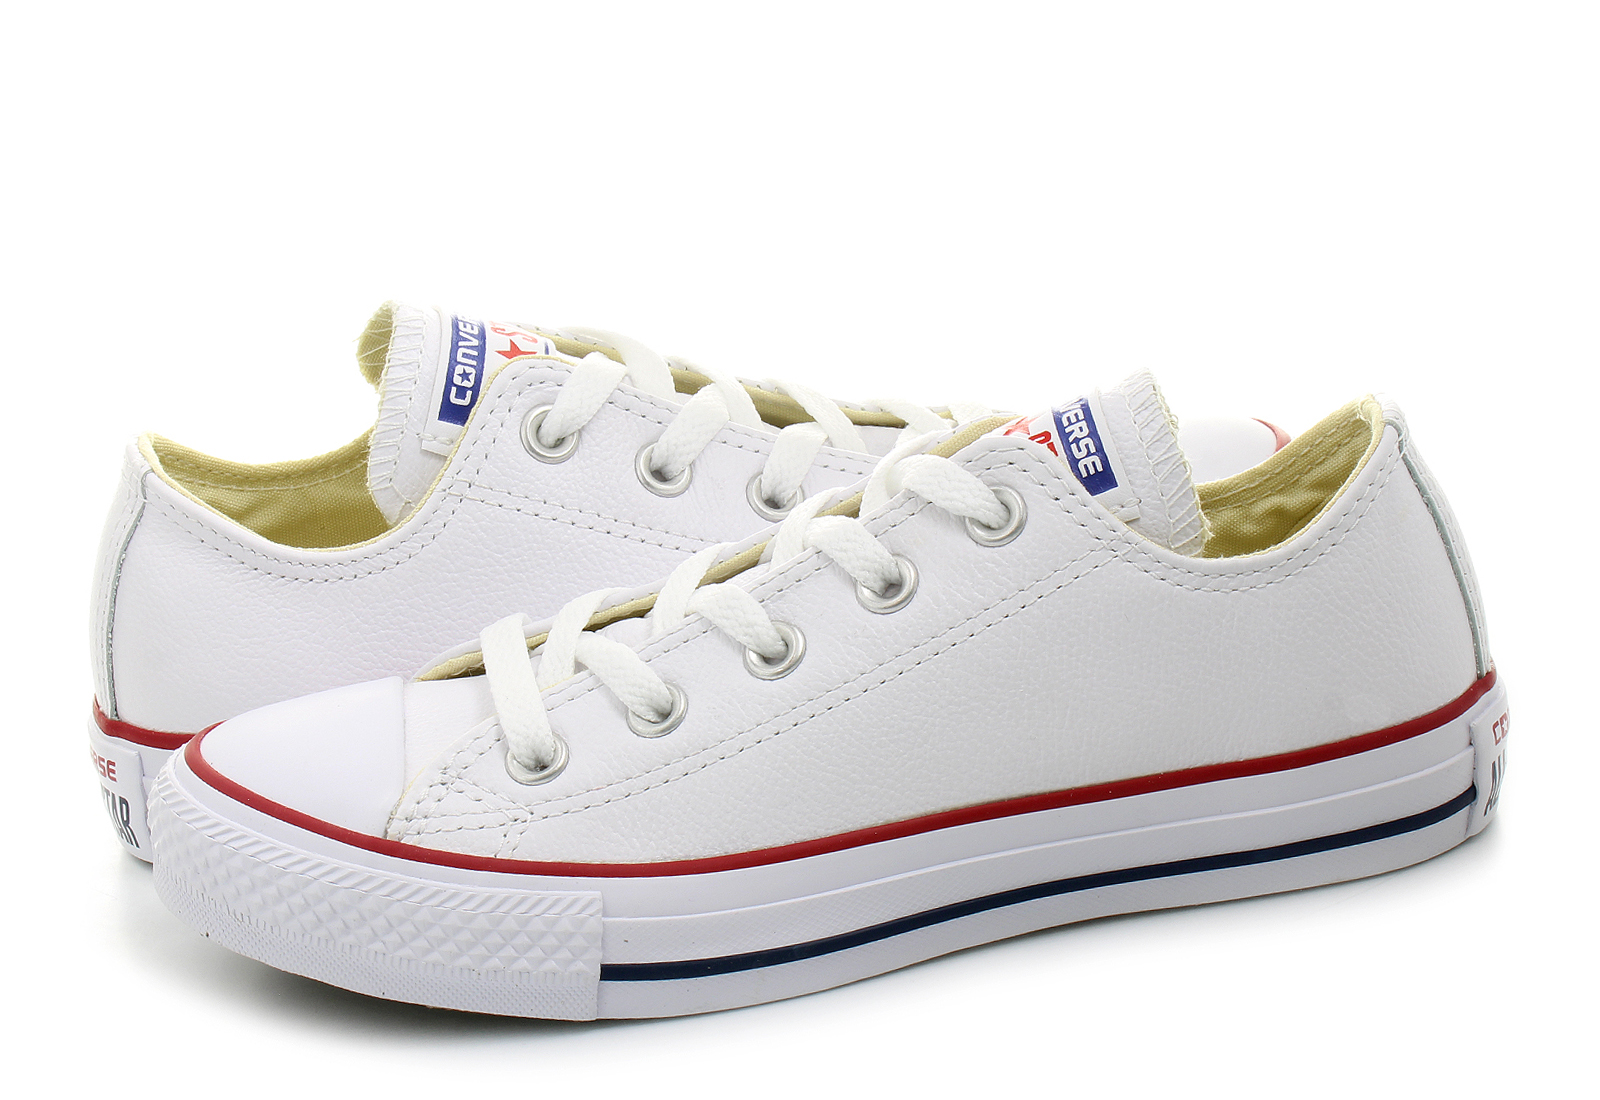 e85f8bf11689 Converse Tornacipő - Ct As Core Leather Ox - 132173C - Office Shoes ...